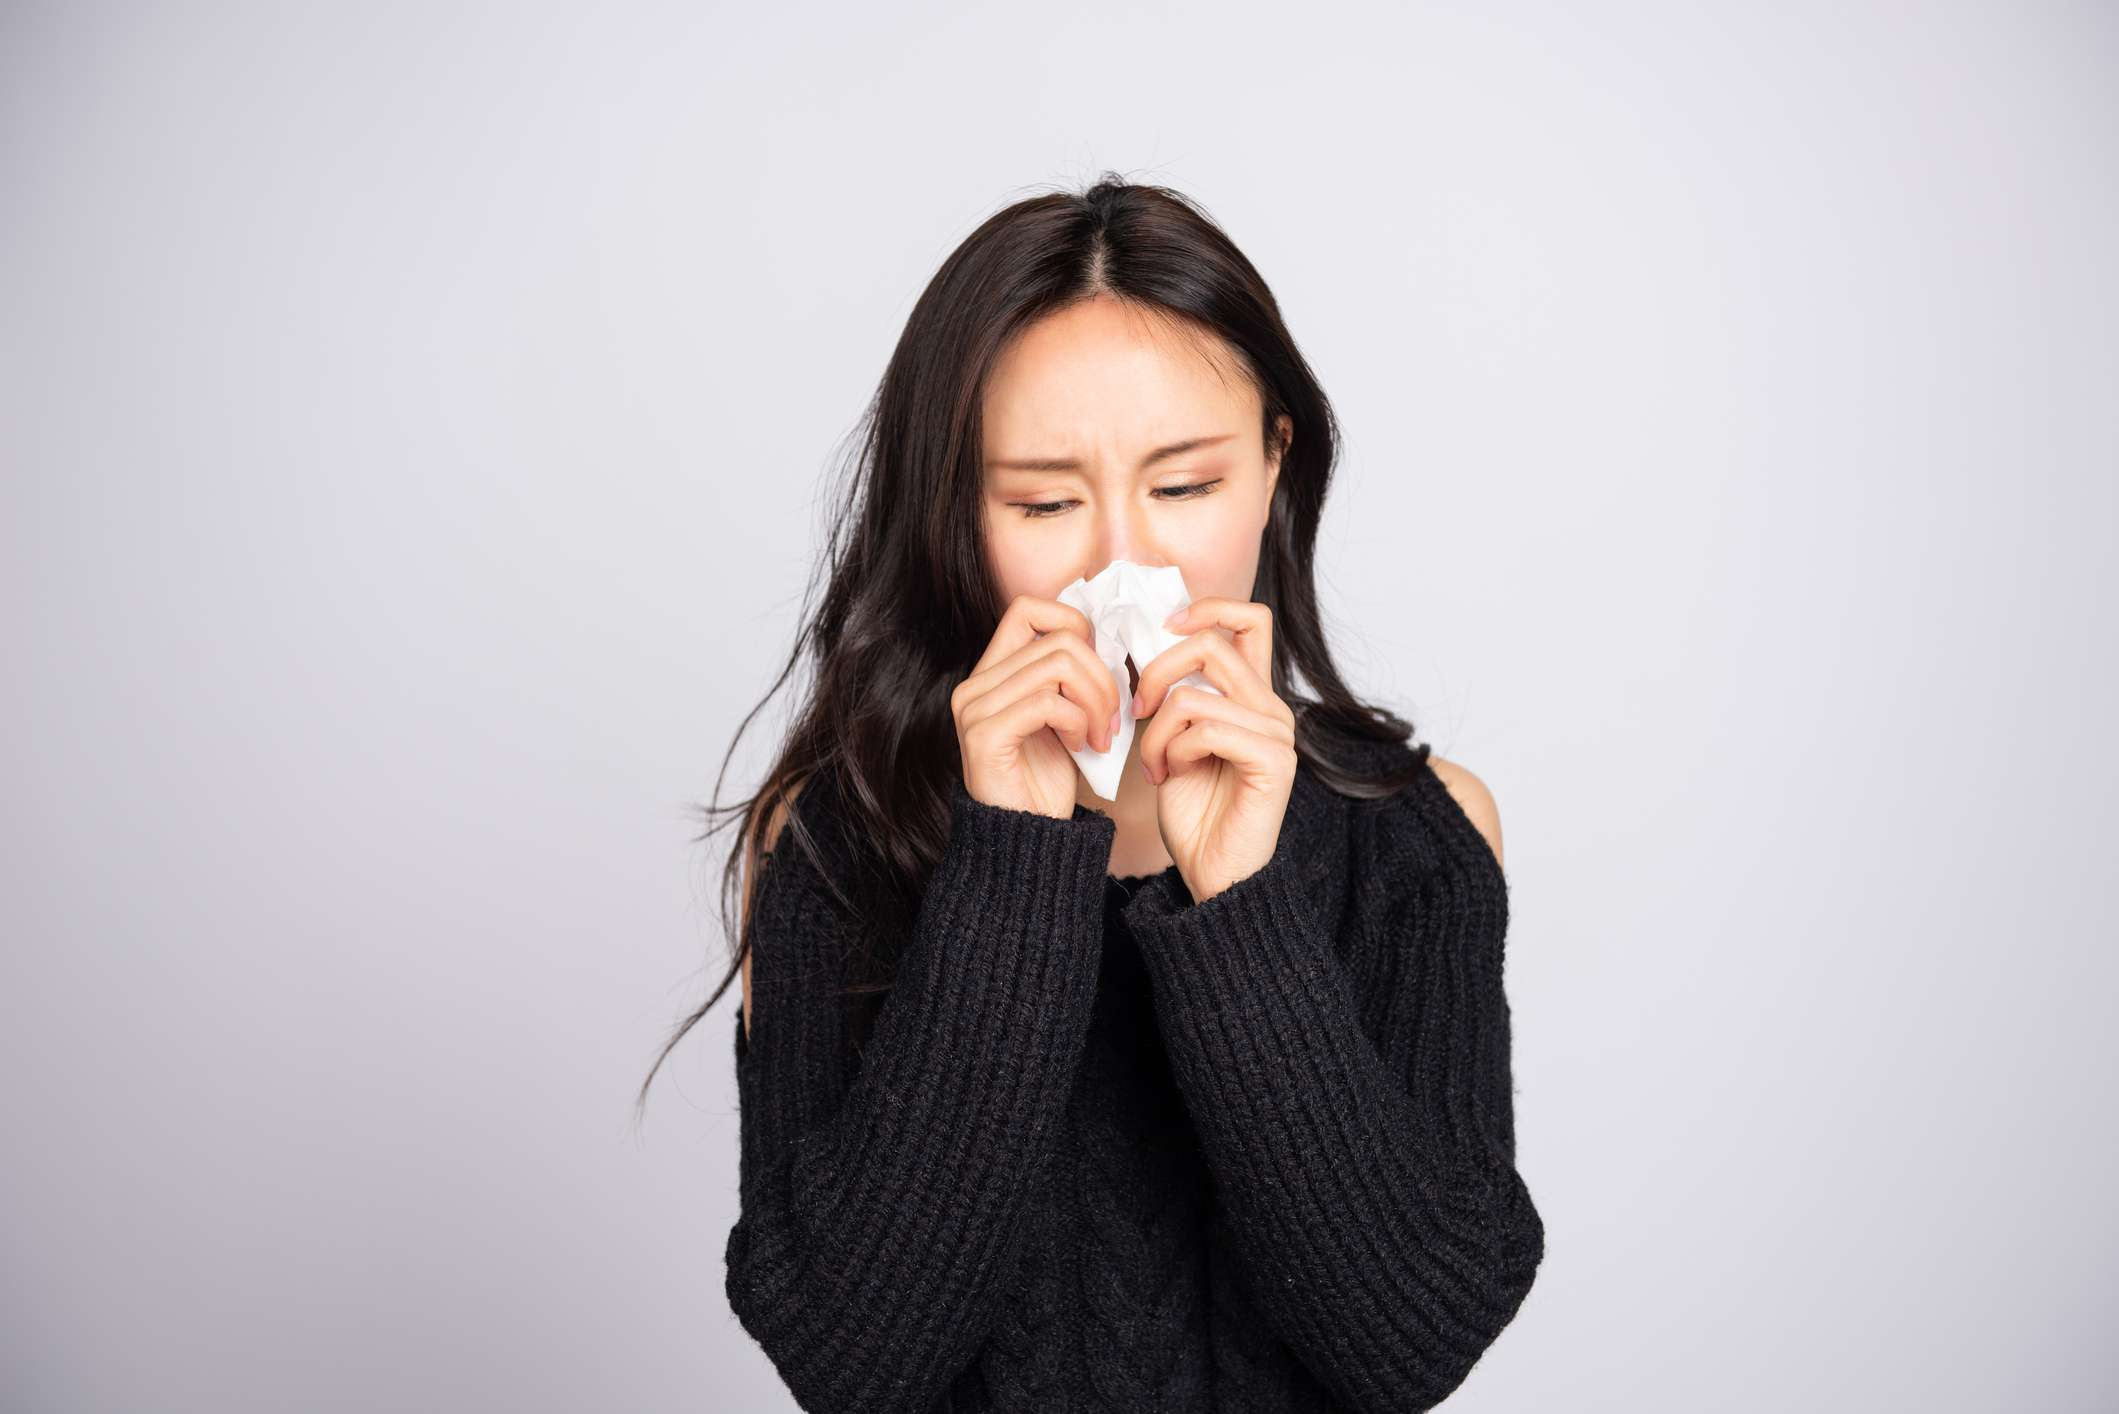 A young Asian woman in a black sweater is blowing her nose.